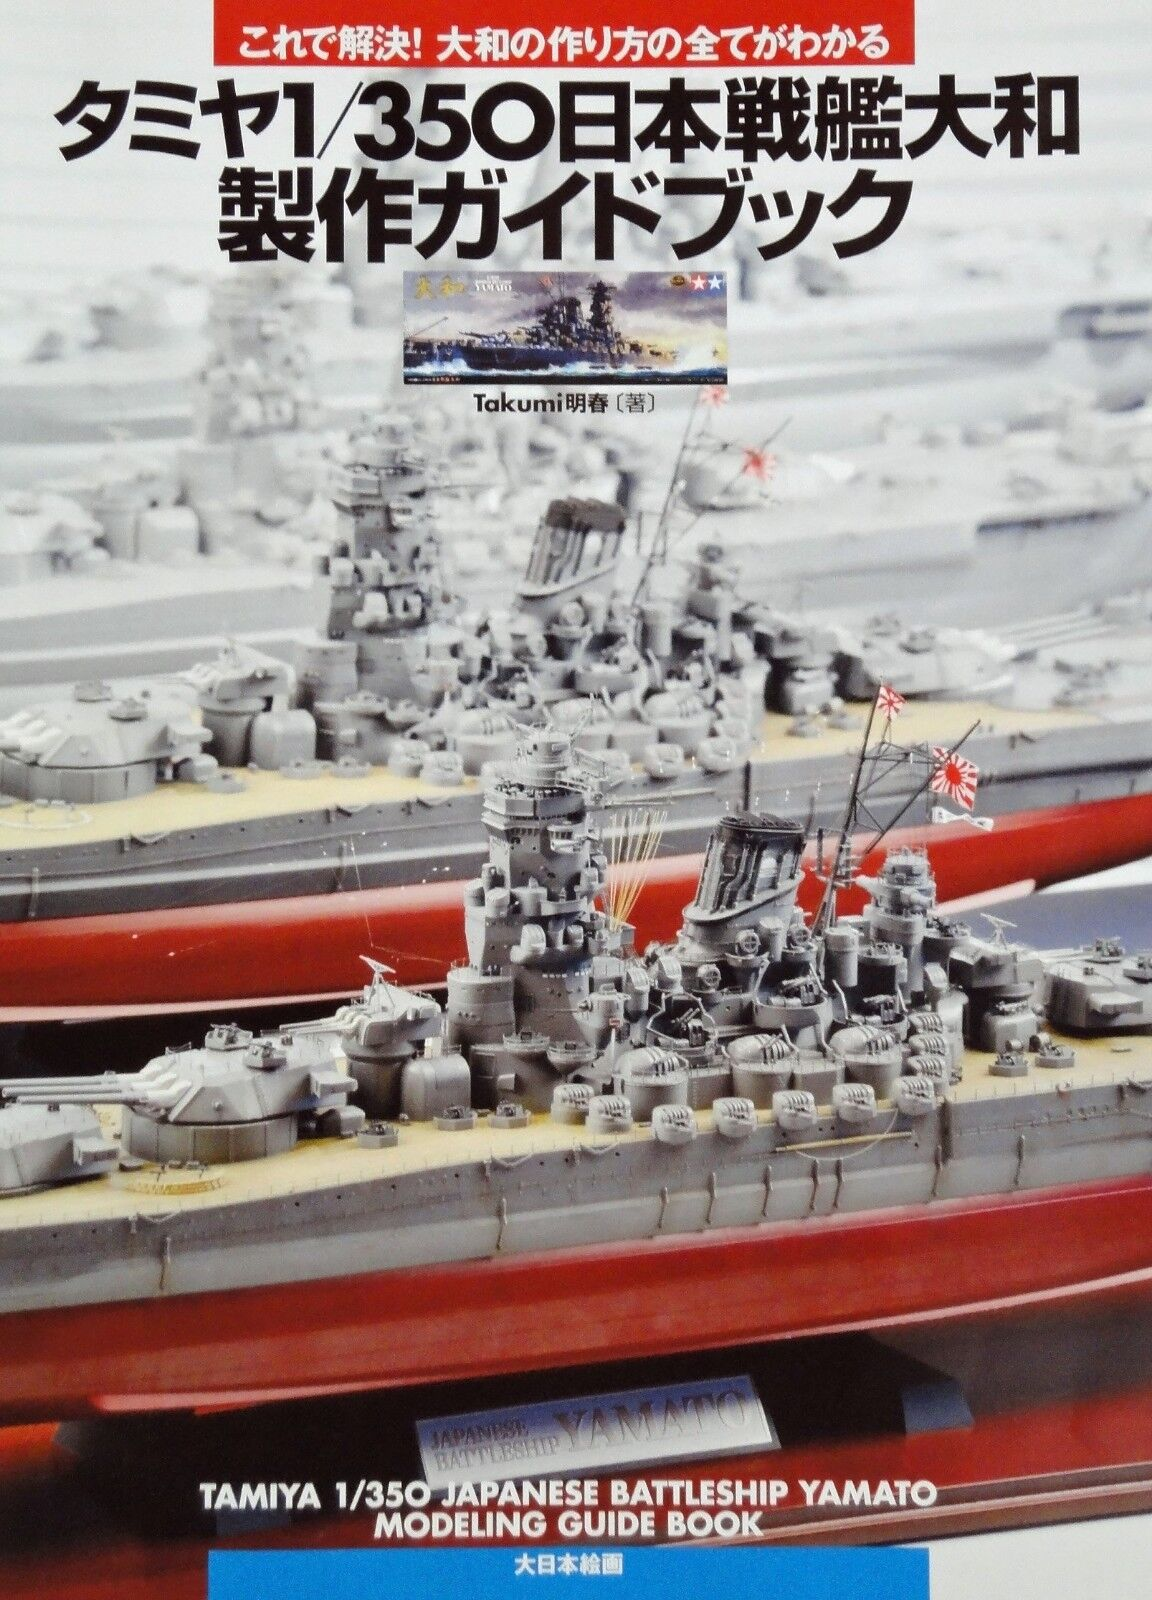 1 350 Tamiya Yamato Modeling Guide Book Picturial Book Japan